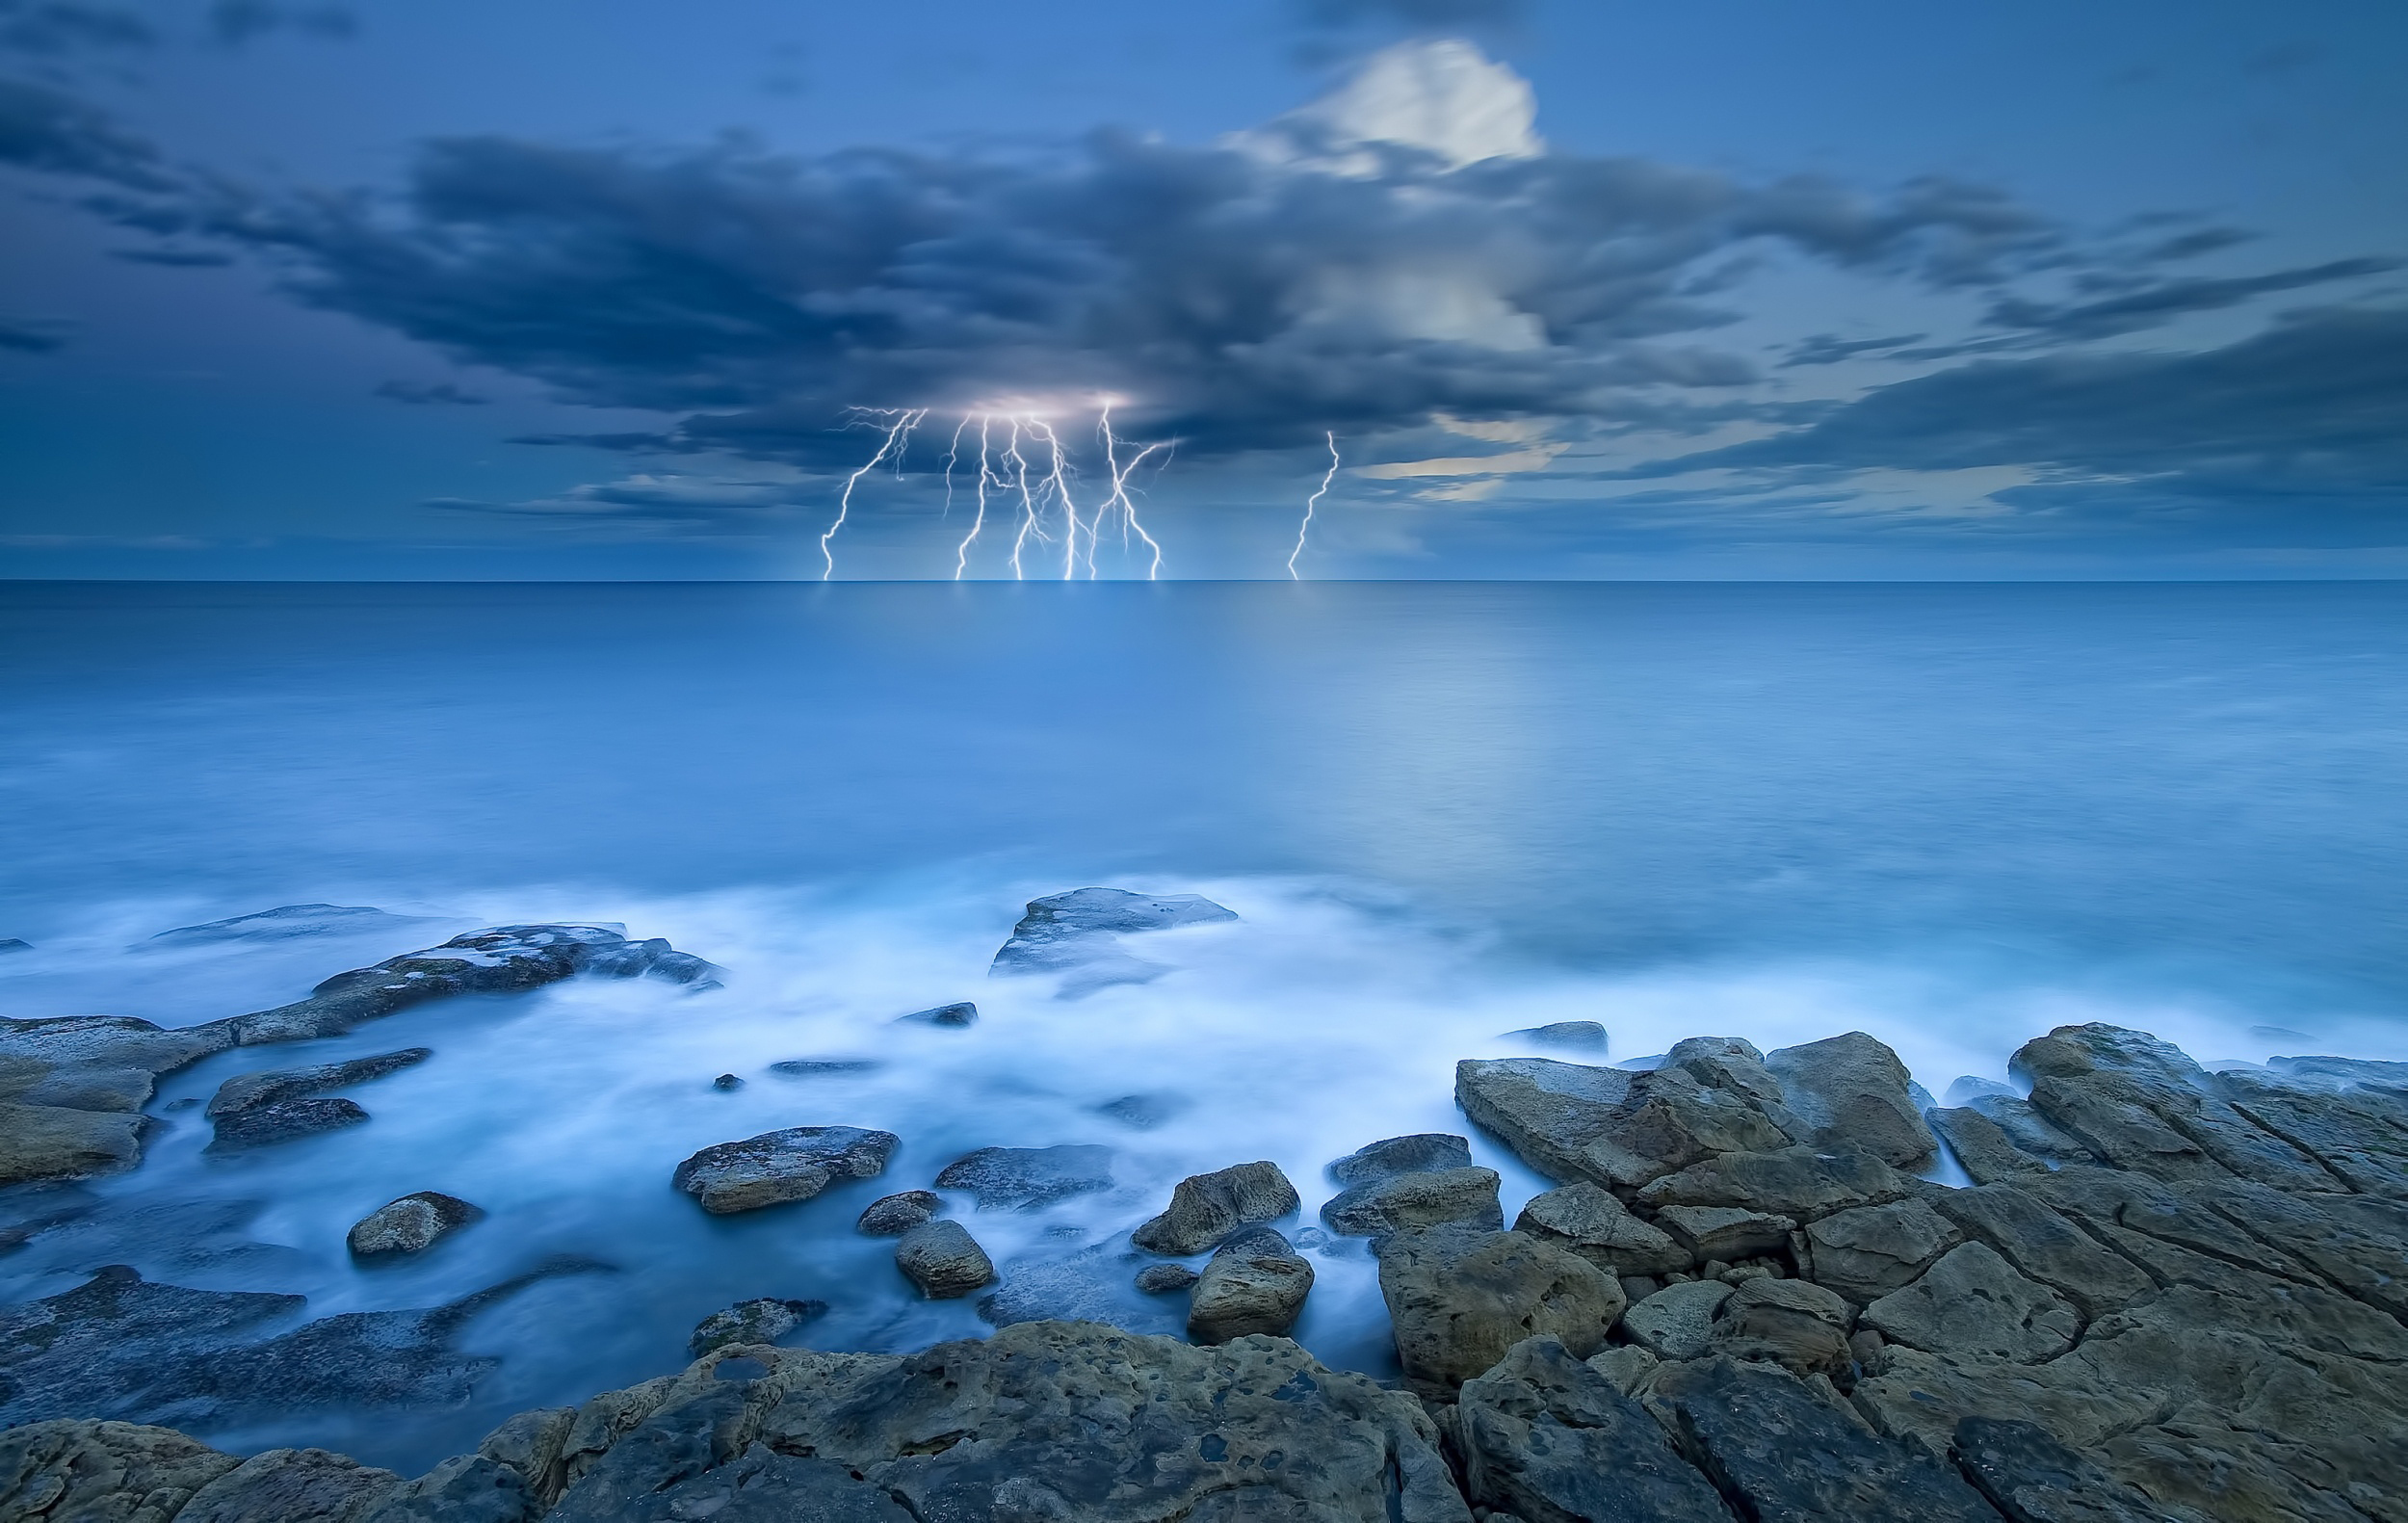 Storm wallpapers pictures images - Wallpaper stills ...